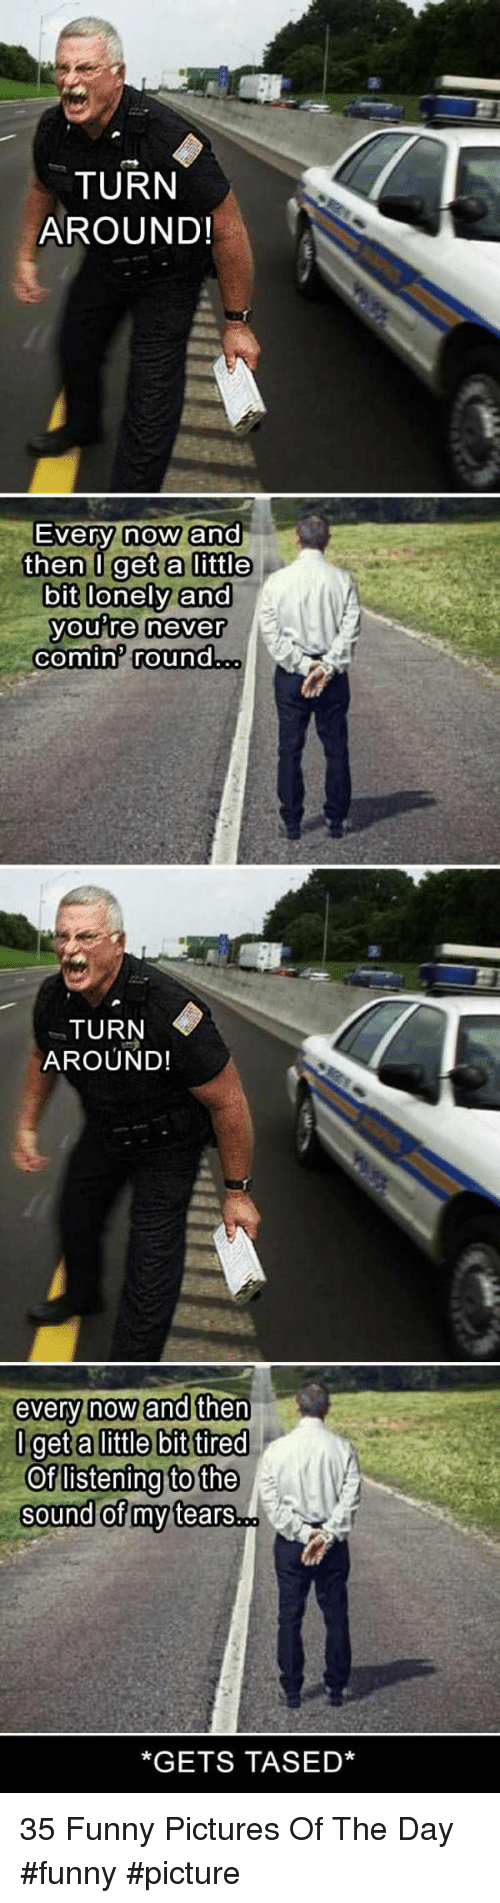 Funny Pictures Of: TURN  AROUND!  Ever  then U get a little  bit lonely and  y now ano  you Te never  comin round  TURN  AROUND!  very now ano  get alittle bit tired  Oflistening to the  sound of my tears..  *GETS TASED* 35 Funny Pictures Of The Day #funny #picture